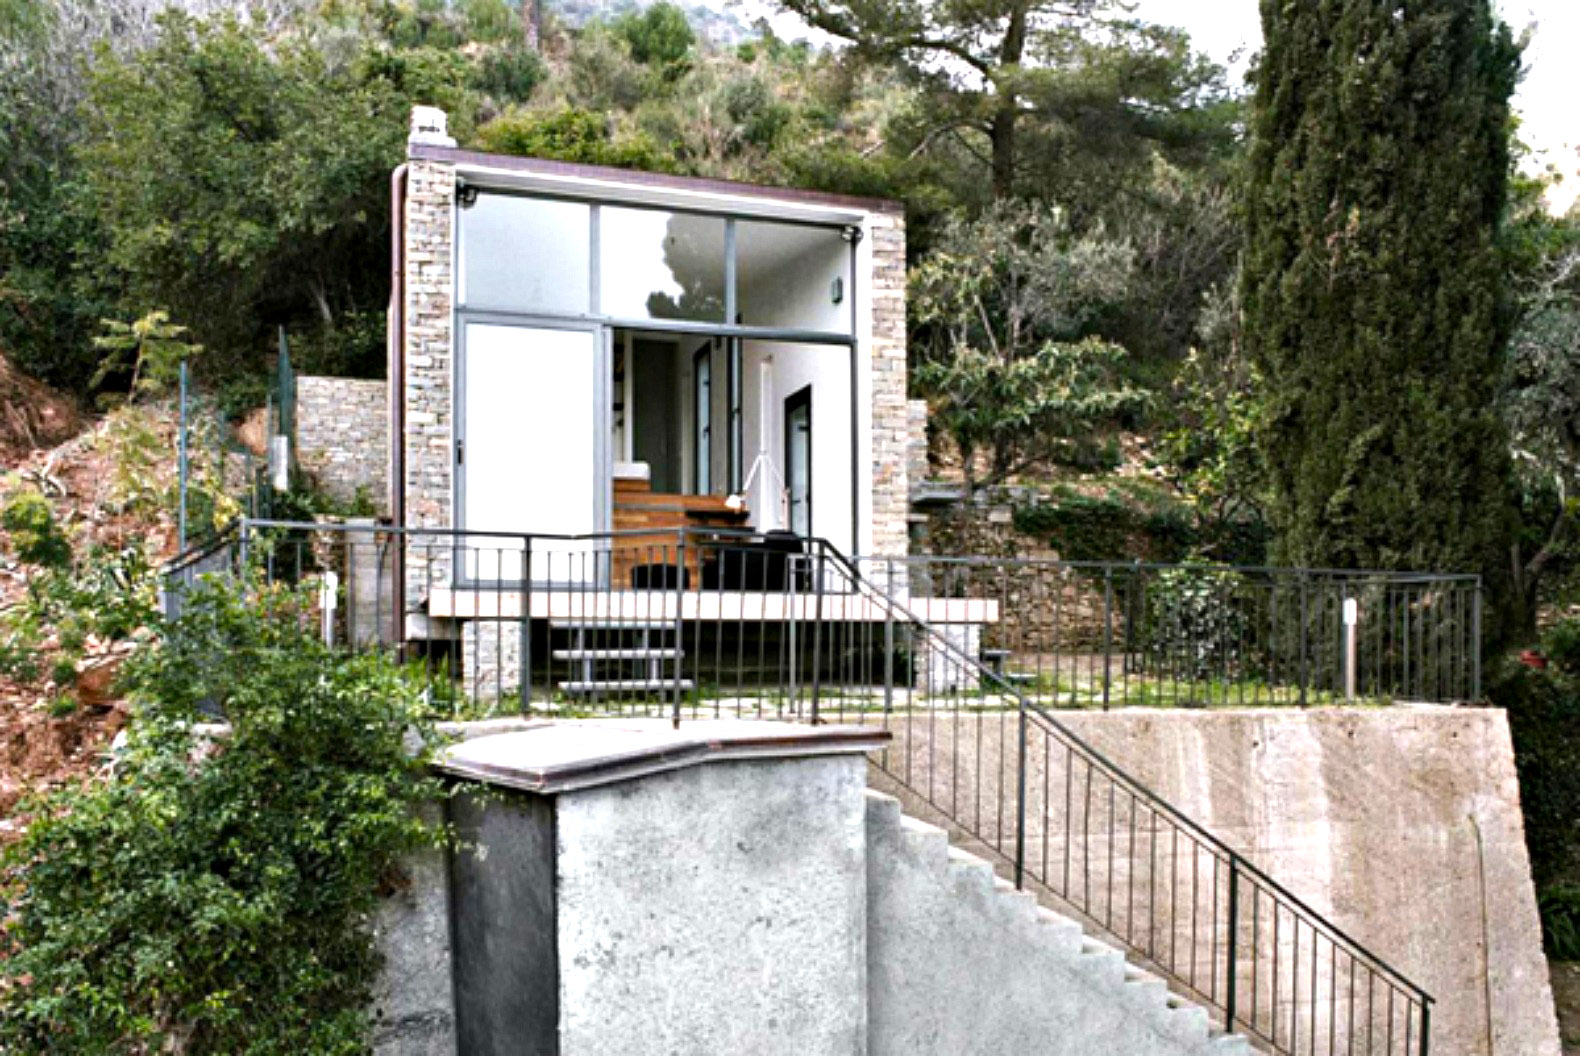 377 Square Foot Home Built Into The Turin Hillside Hides A Full Kitchen Under Stairs